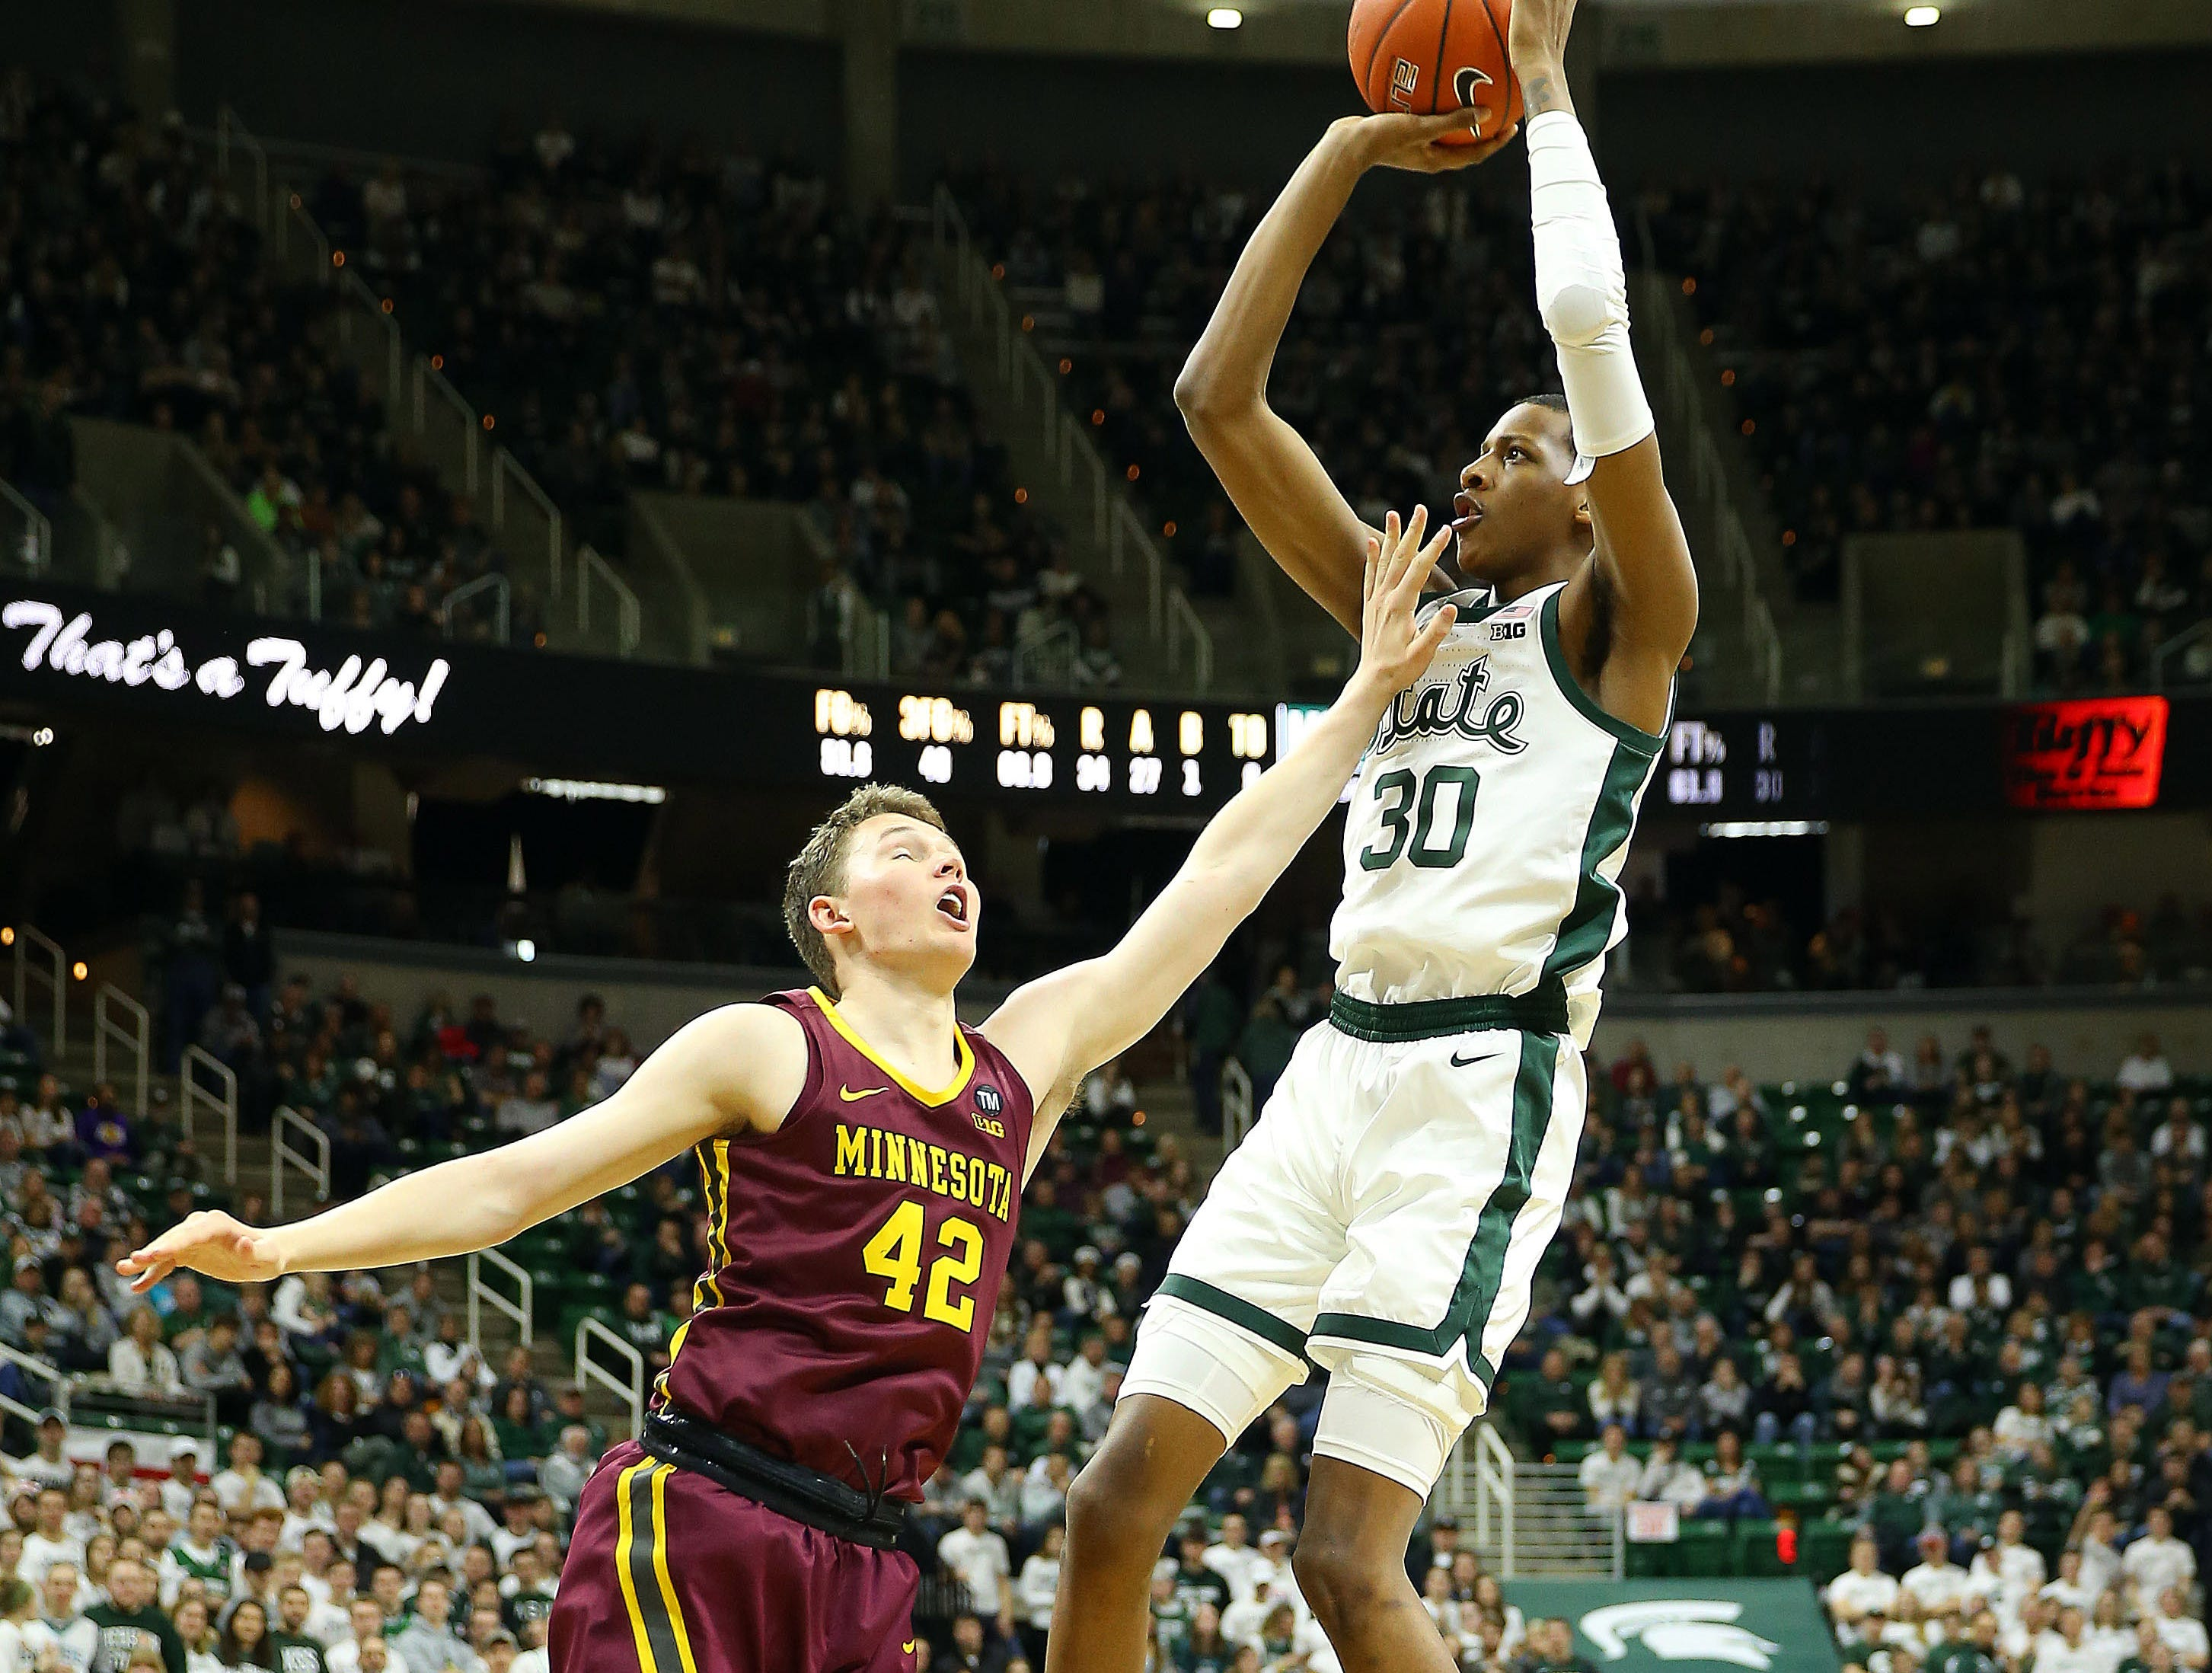 Feb 9, 2019; East Lansing, MI, USA; Michigan State Spartans forward Marcus Bingham Jr. (30) shoots the ball over Minnesota Golden Gophers forward Michael Hurt (42) during the second half at the Breslin Center. Mandatory Credit: Mike Carter-USA TODAY Sports